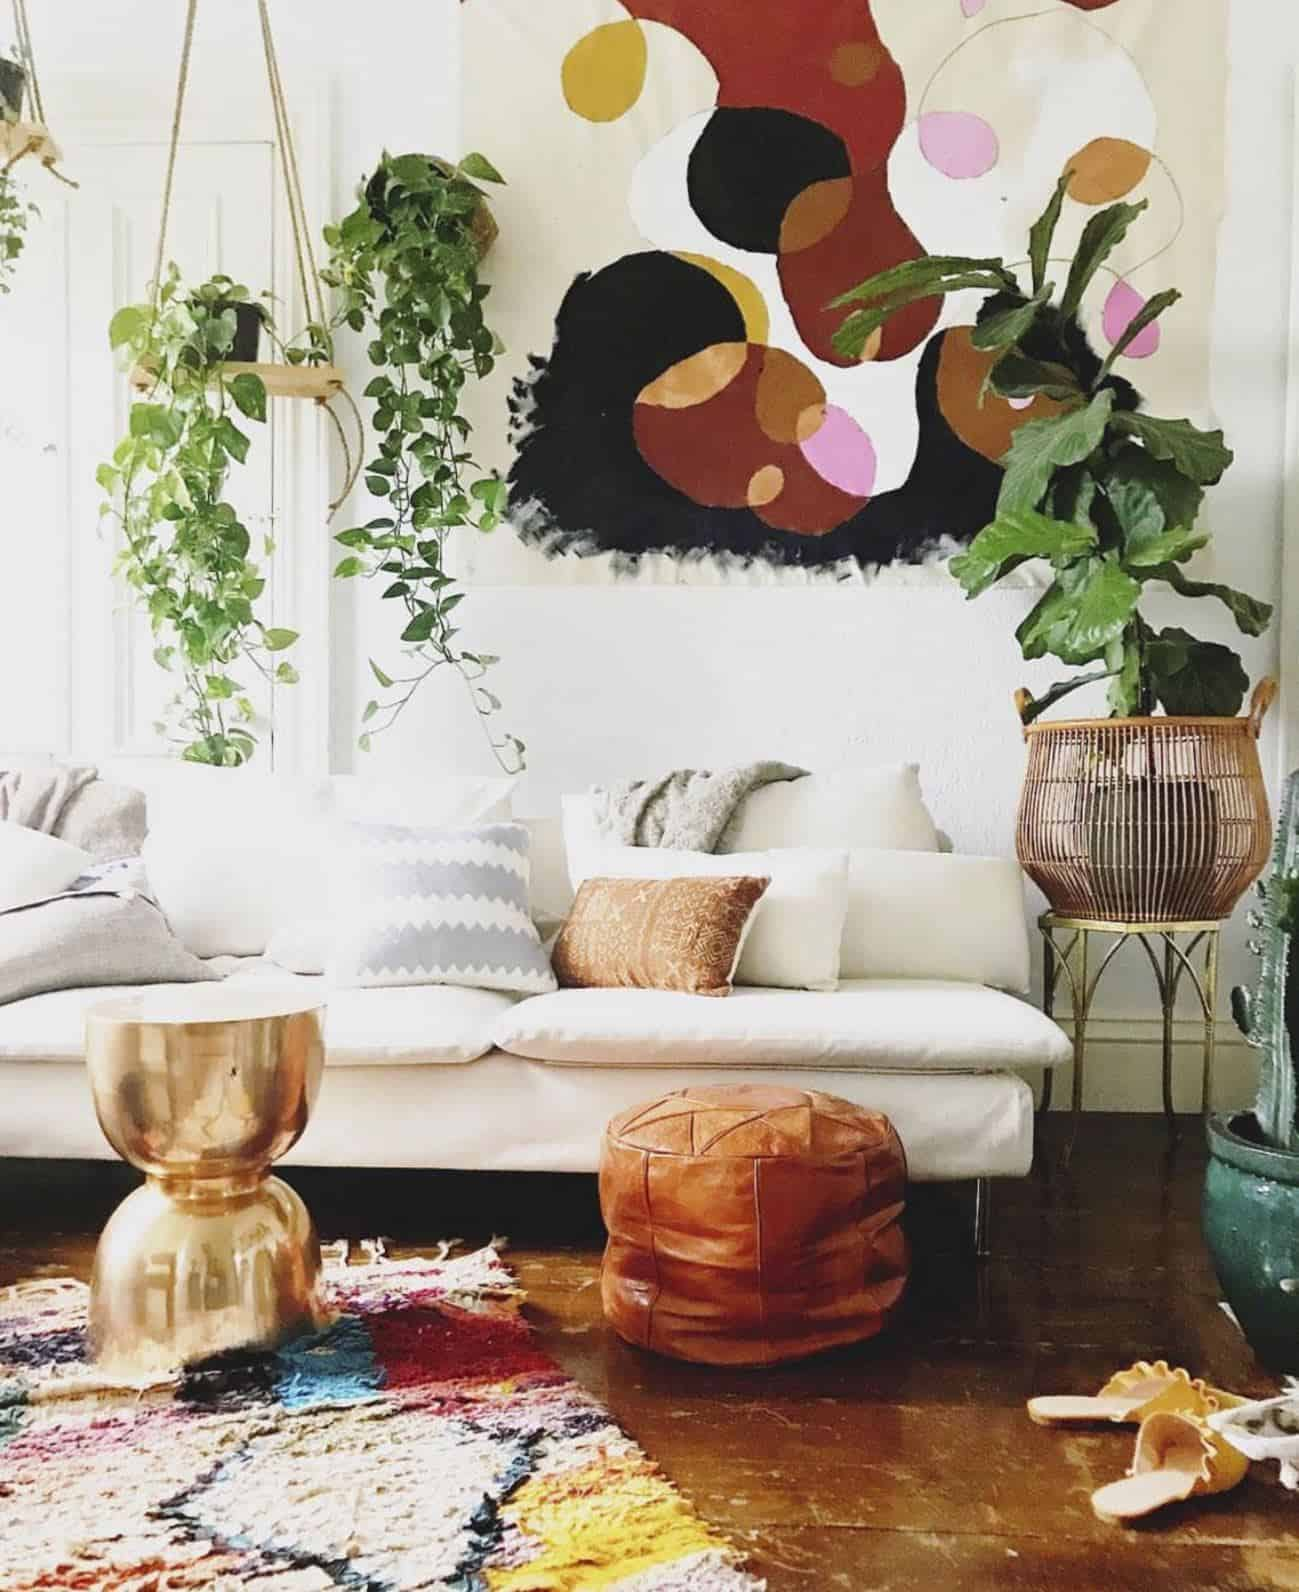 A bohemian style lounge featuring wall hangings, plants, leather Moroccan pouffes in earthy colours